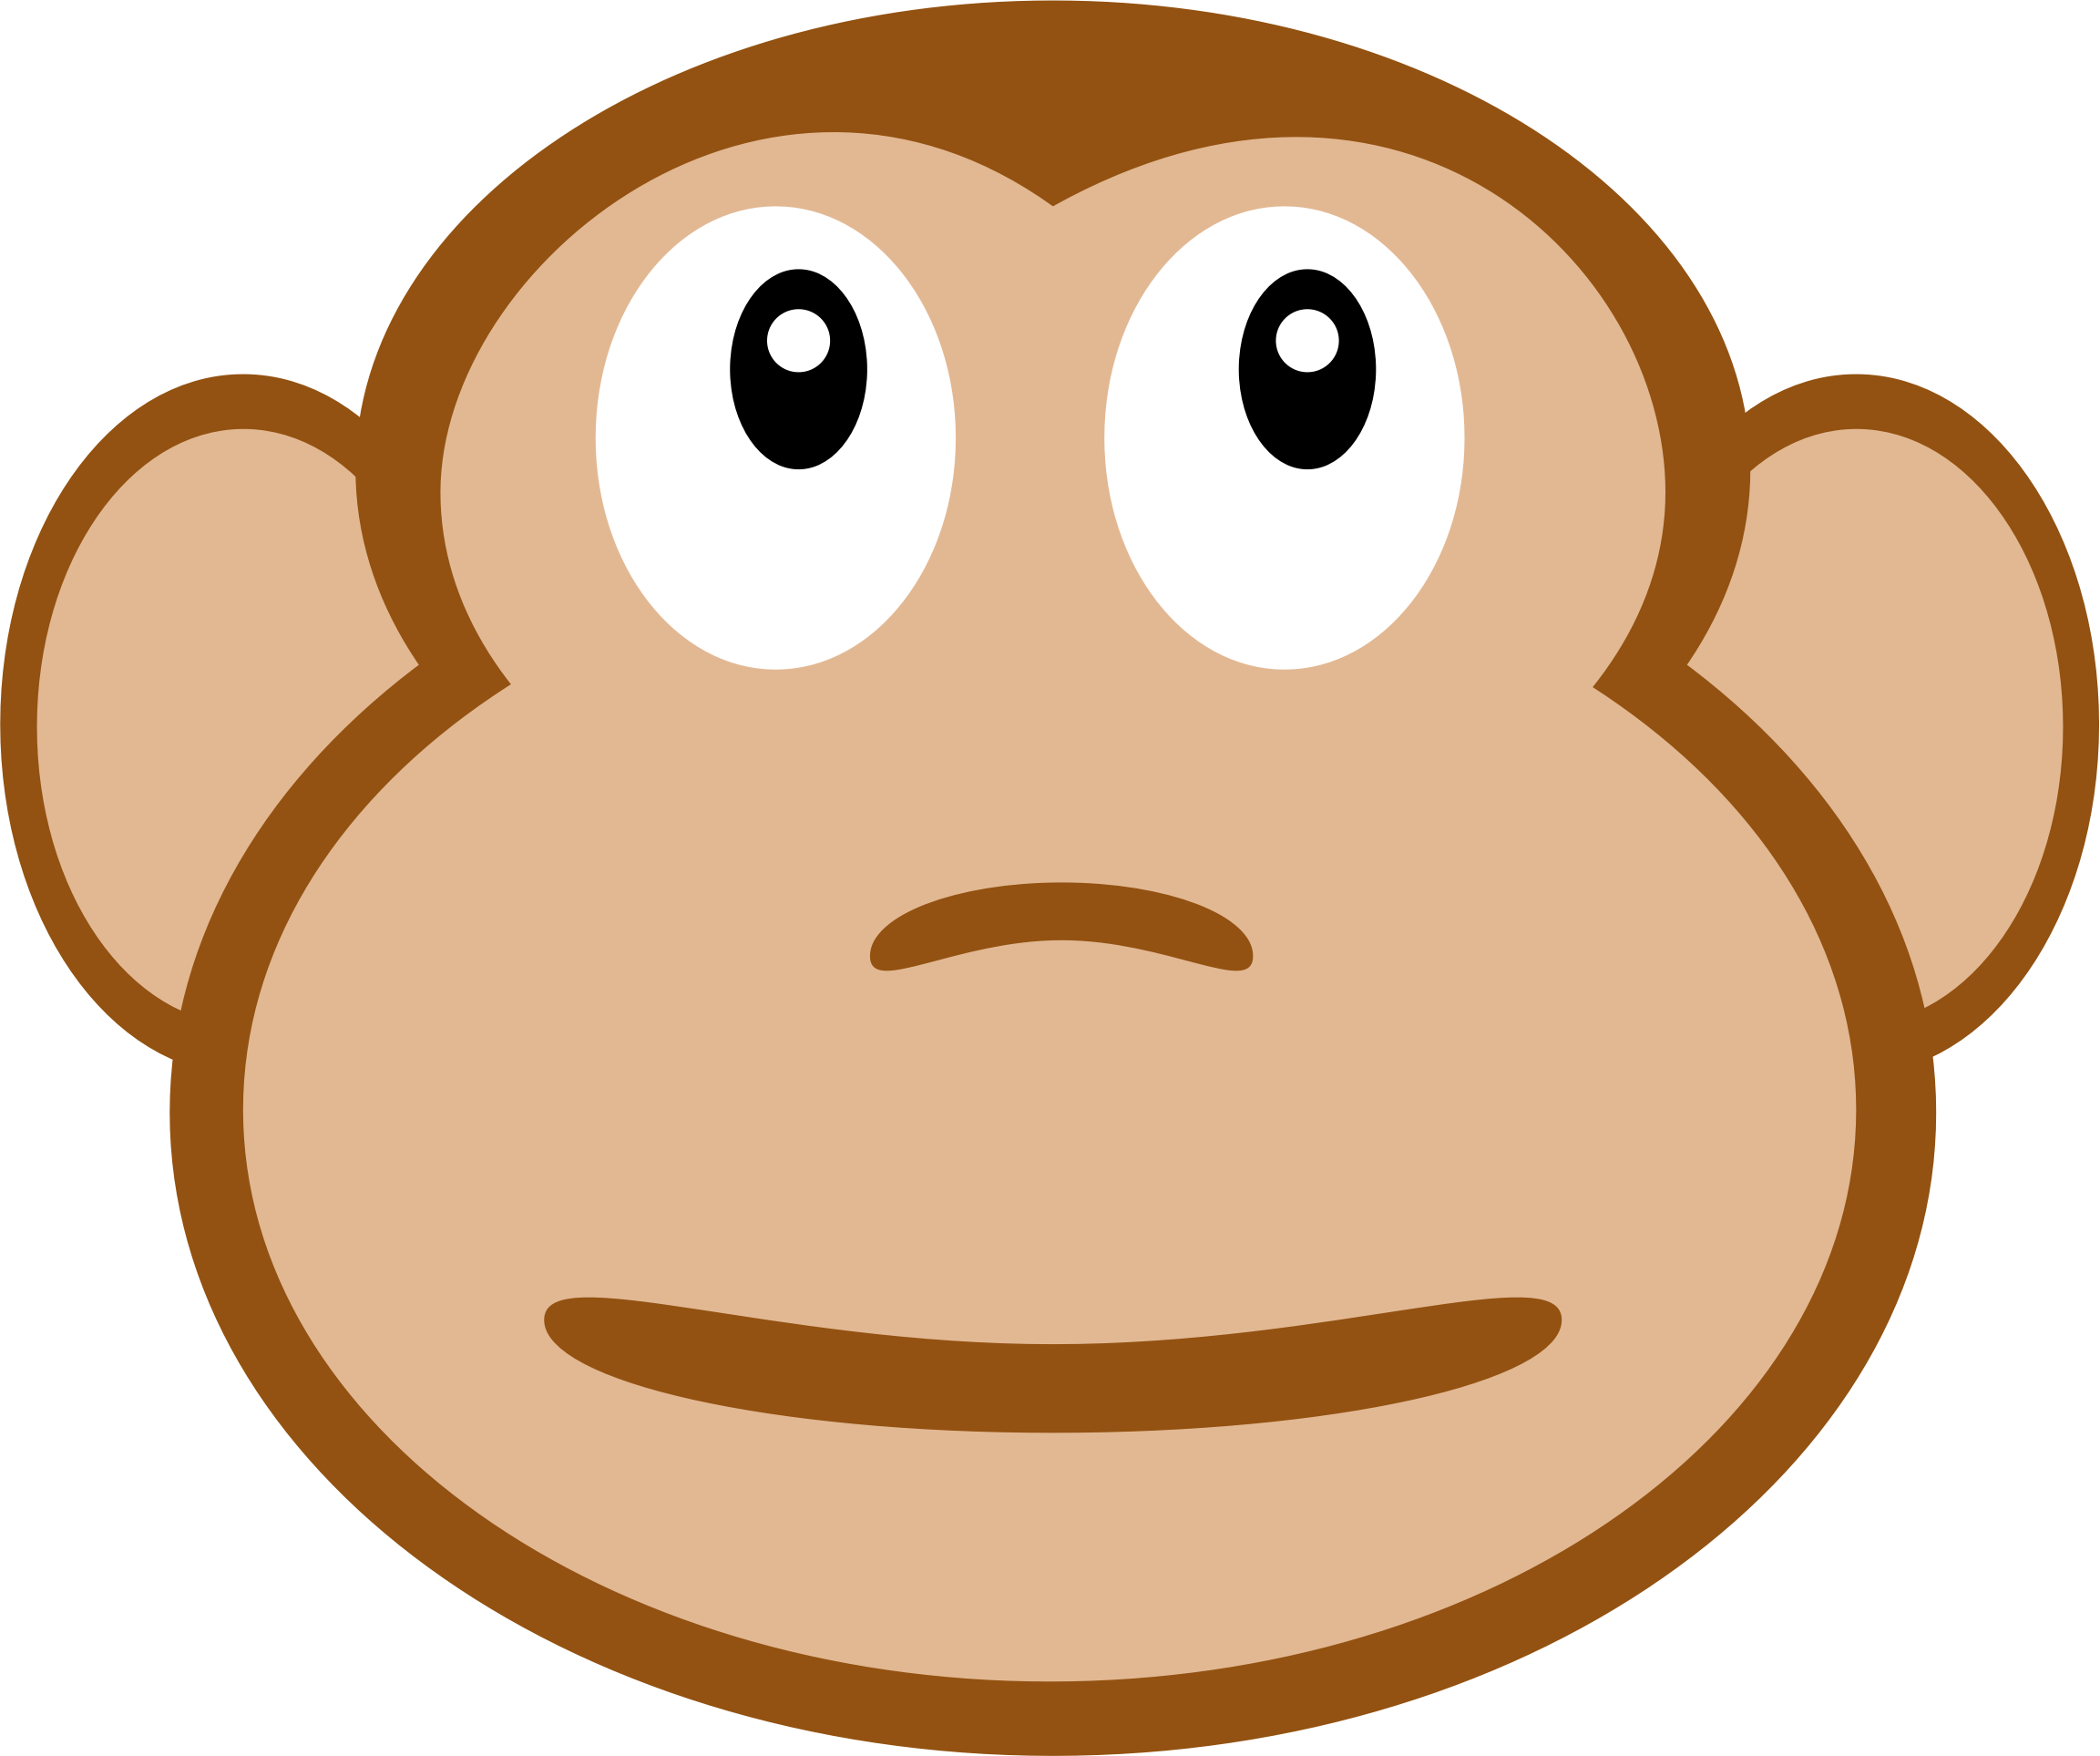 Fwd: Monkey Face by jsstrn